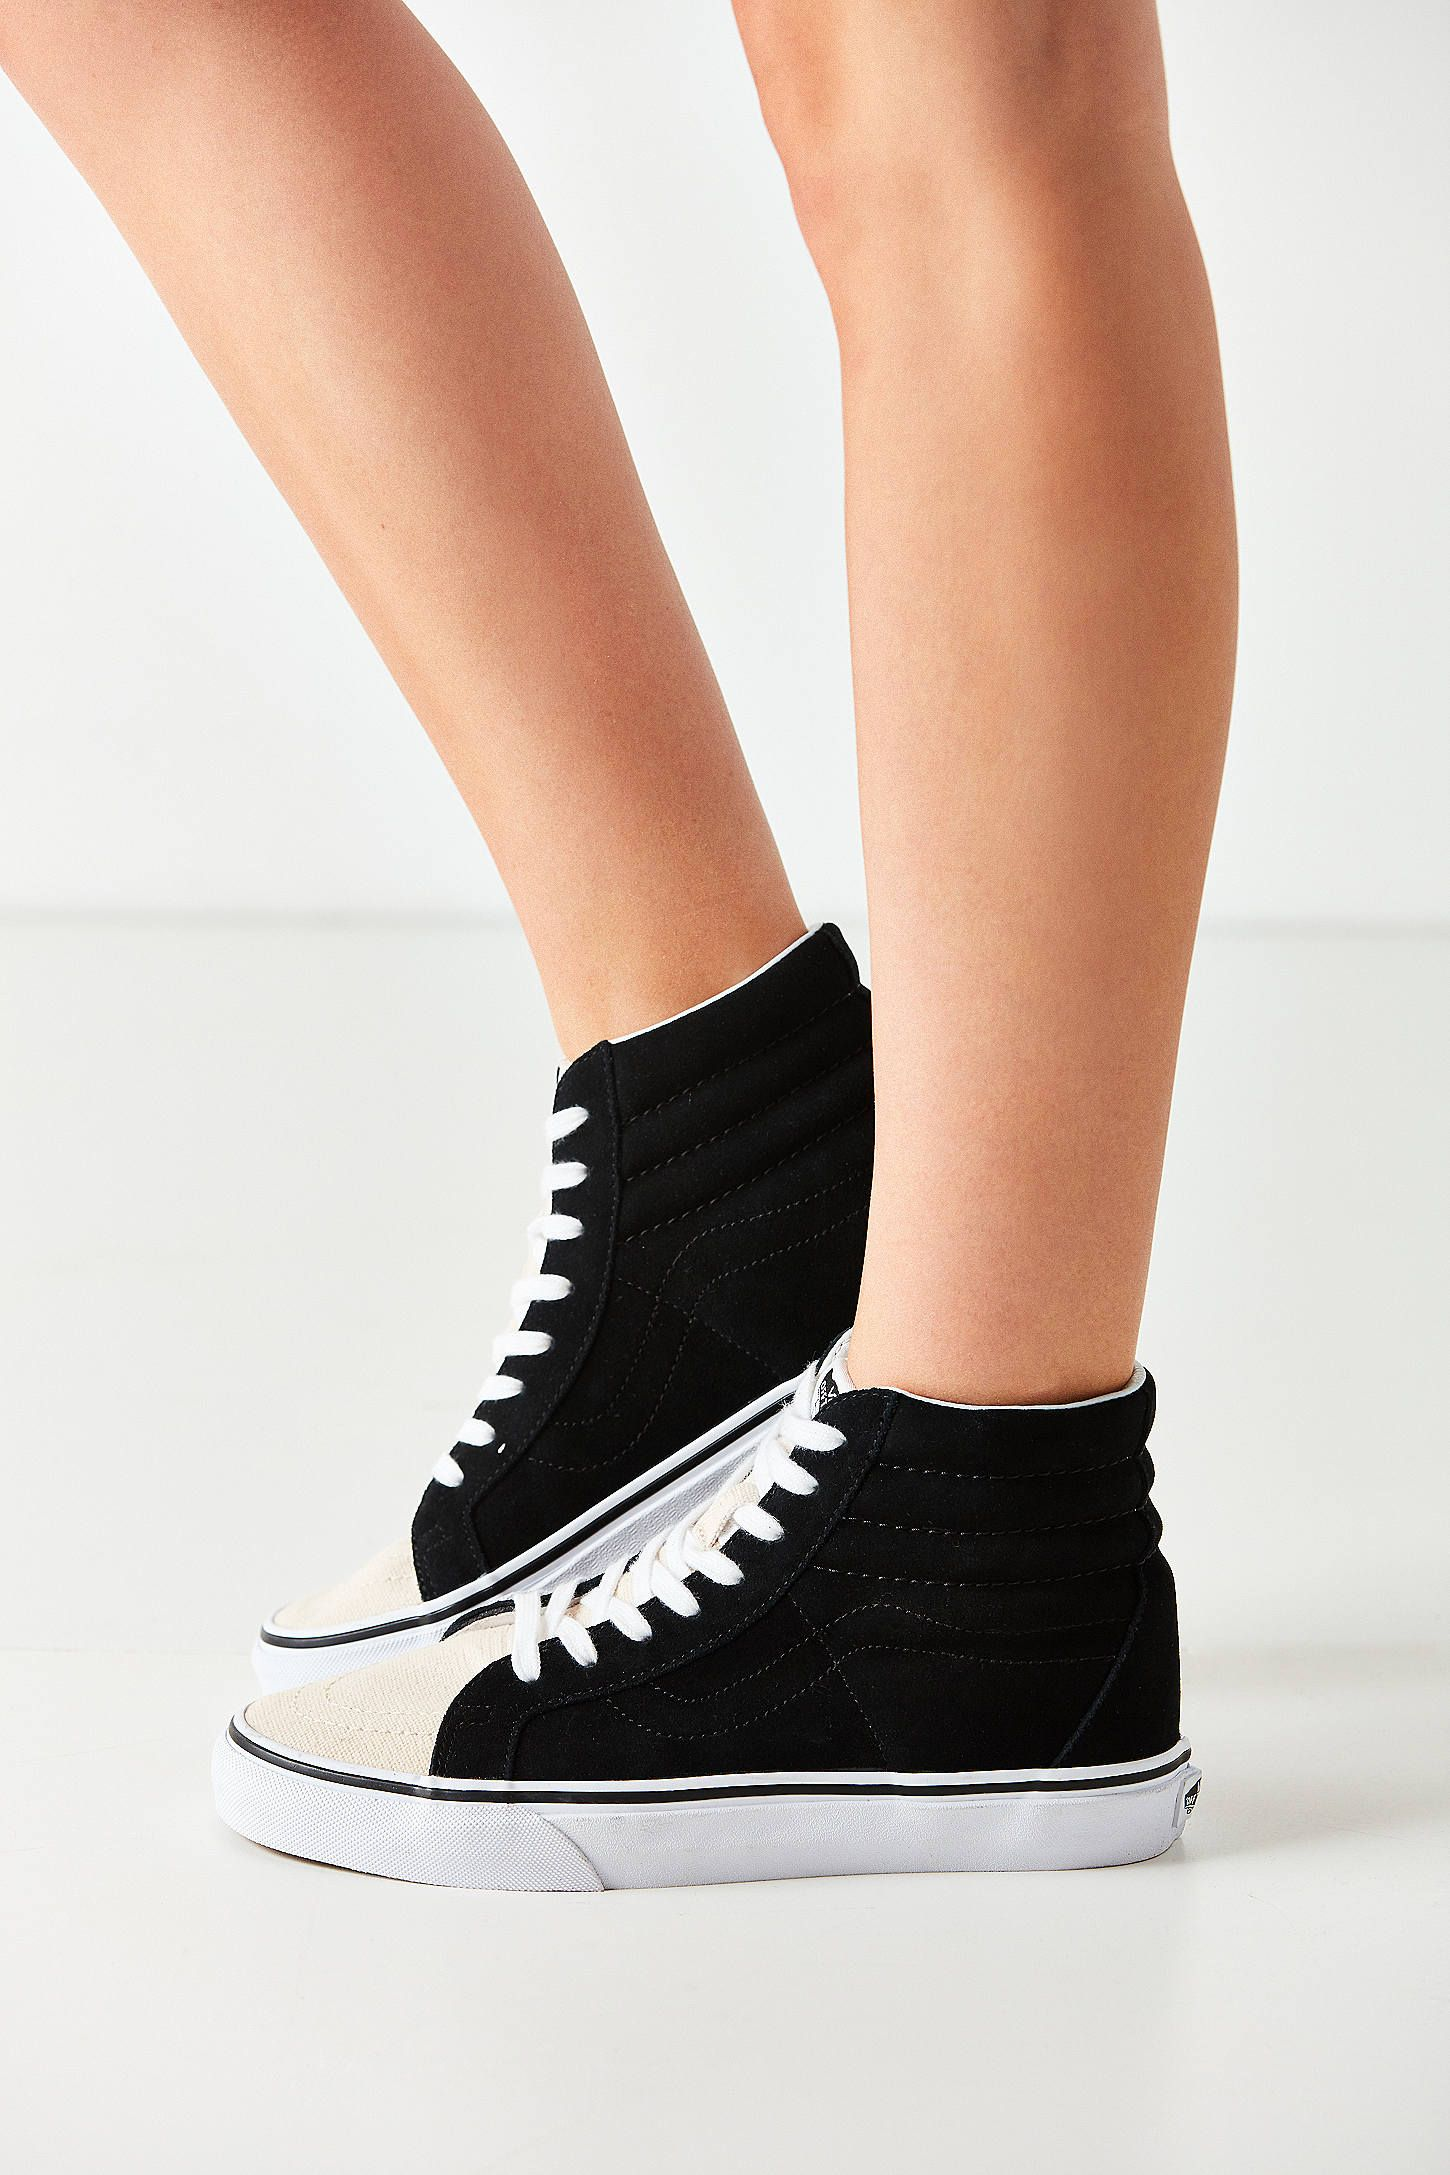 035f0bae9ad588 Shop Vans Two-Tone Sk8-Hi Reissue Sneaker at Urban Outfitters today. We  carry all the latest styles